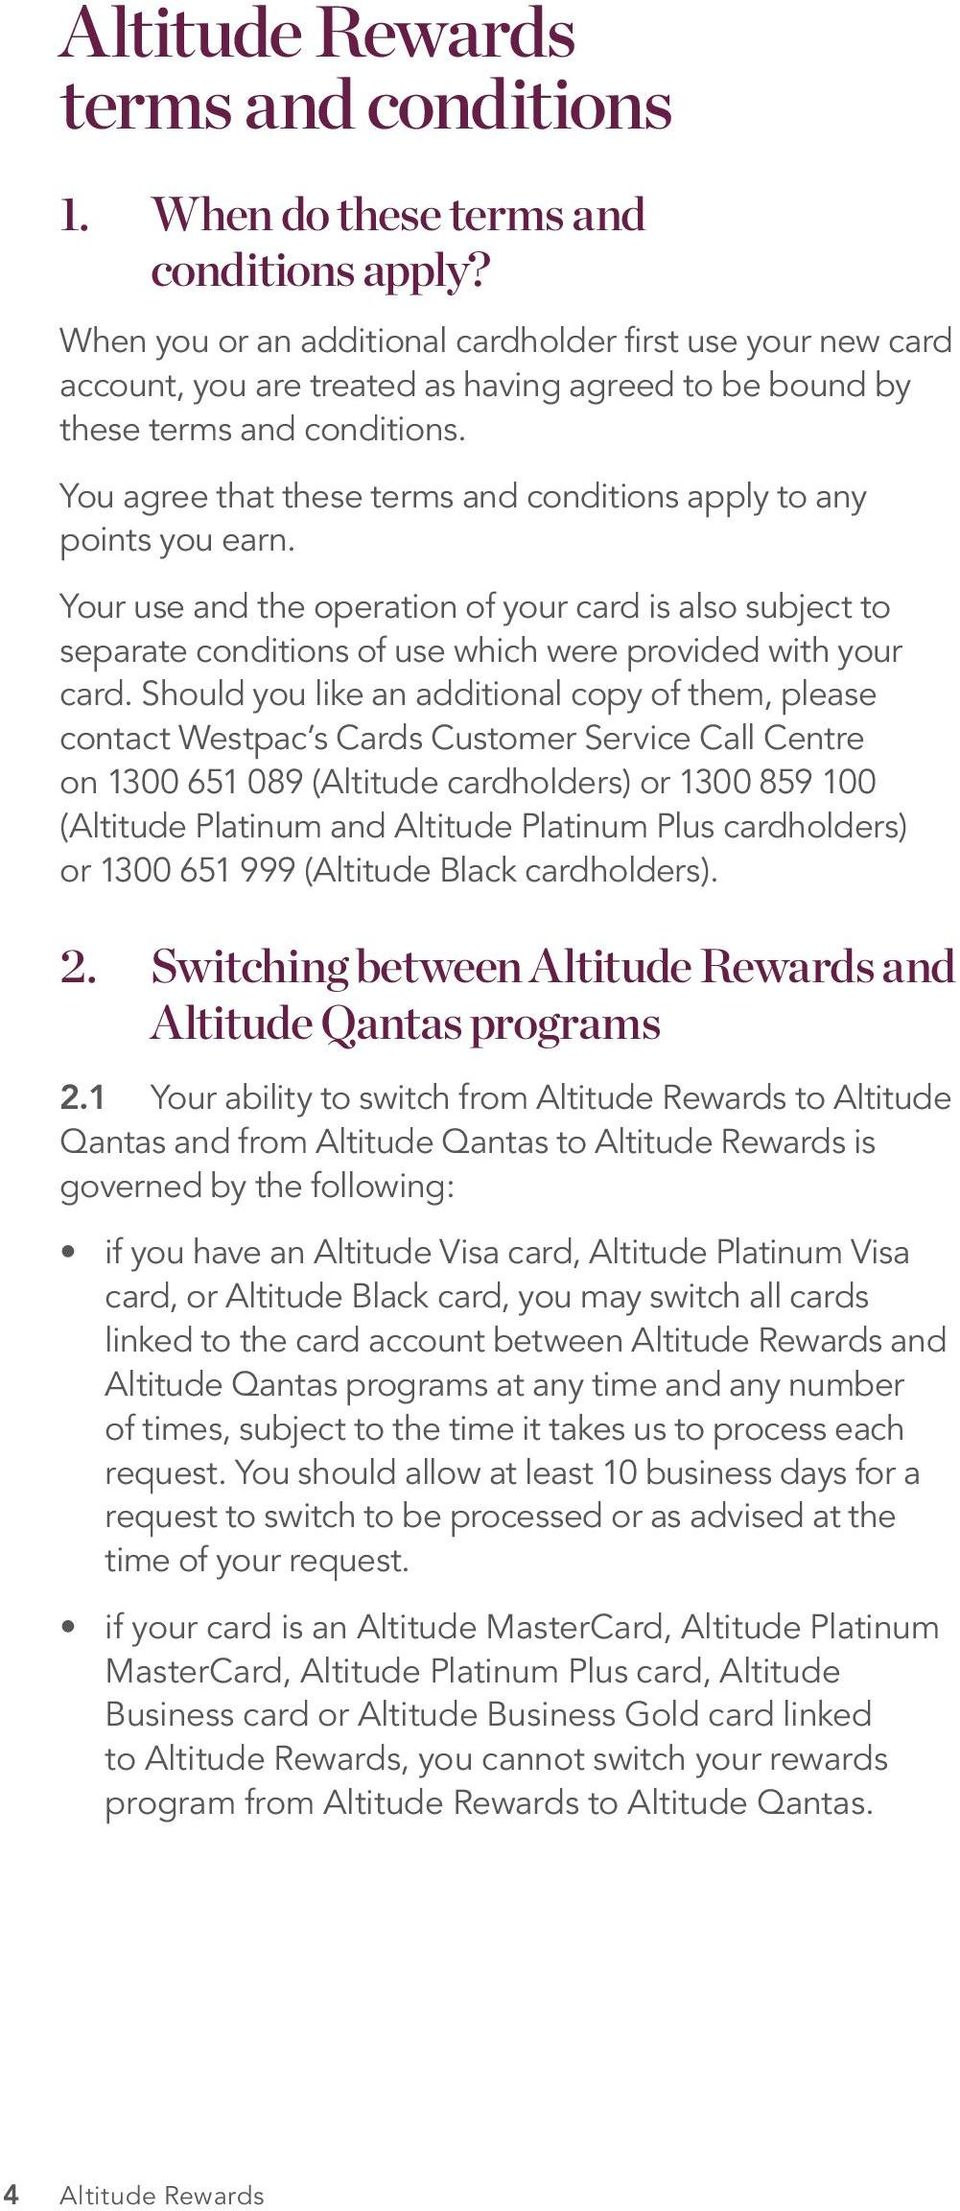 You agree that these terms and conditions apply to any points you earn. Your use and the operation of your card is also subject to separate conditions of use which were provided with your card.